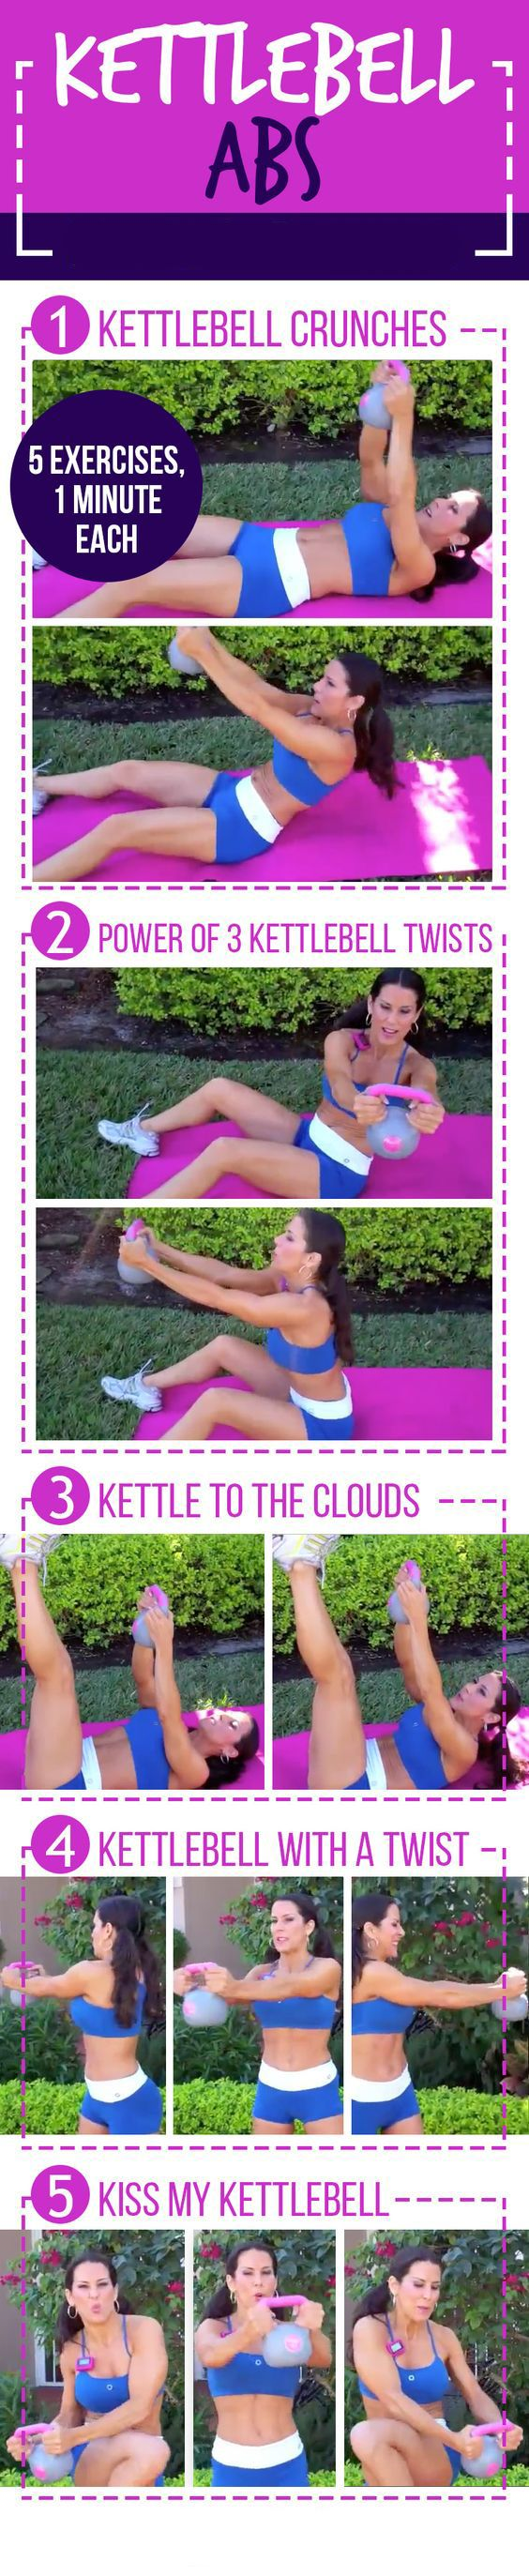 Kettlebell Ab Workout | Posted By: CustomWeightLossProgram.com